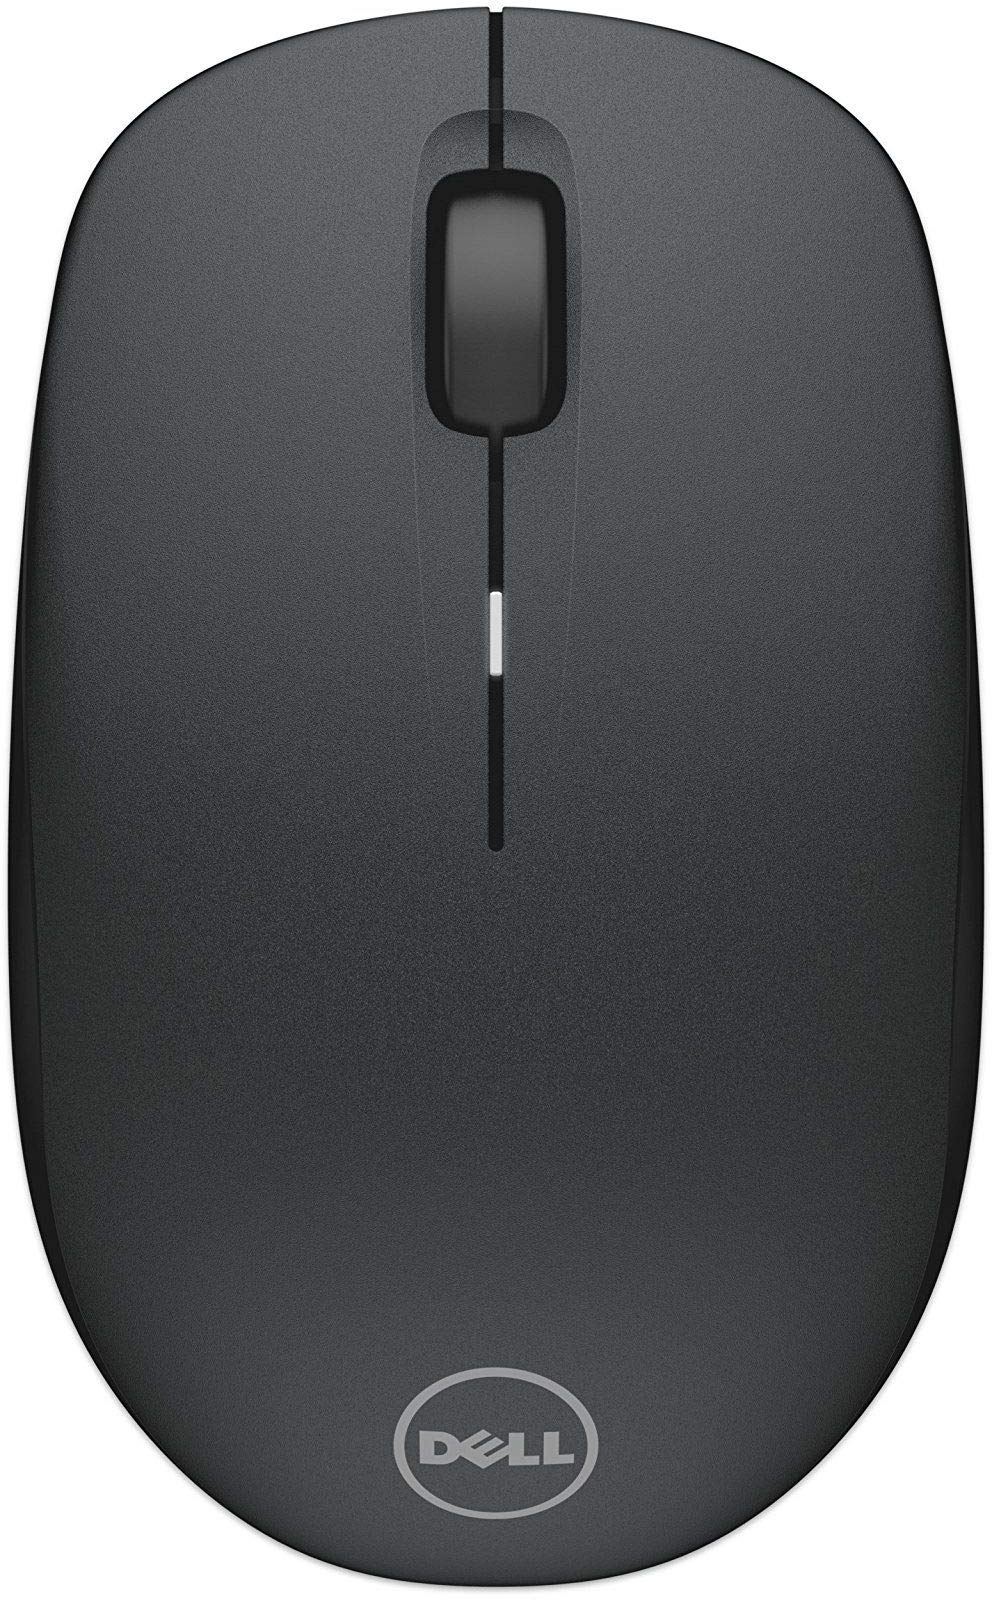 Dell Wireless Mouse WM126 - Black (NNP0G)